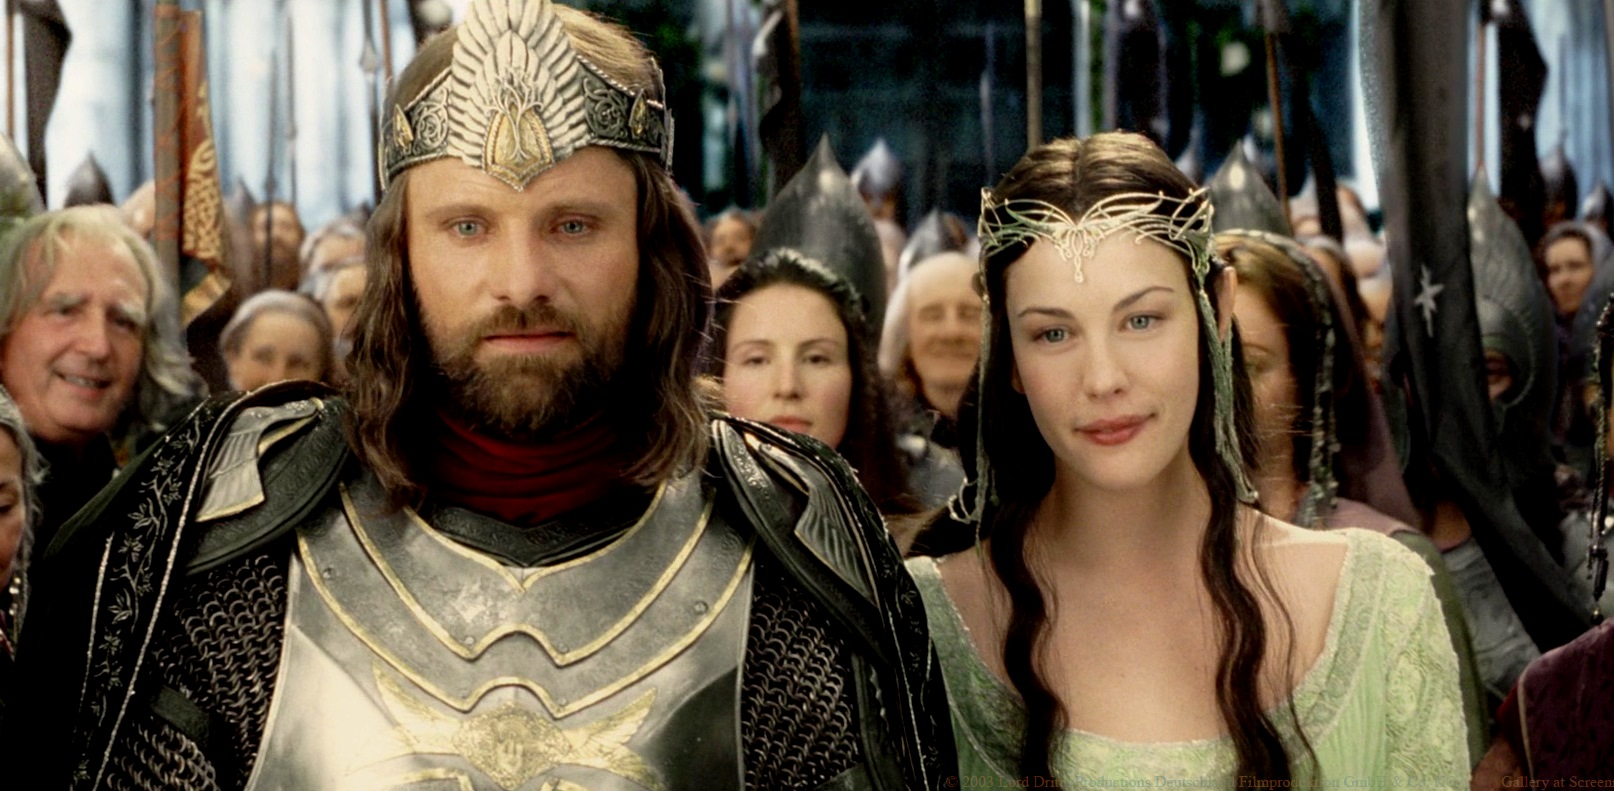 Aragorn (Viggo Mortensen) returns to be the king to marry Arwen (Liv Tyler) in The Lord of the Rings The Return of the King (2003)